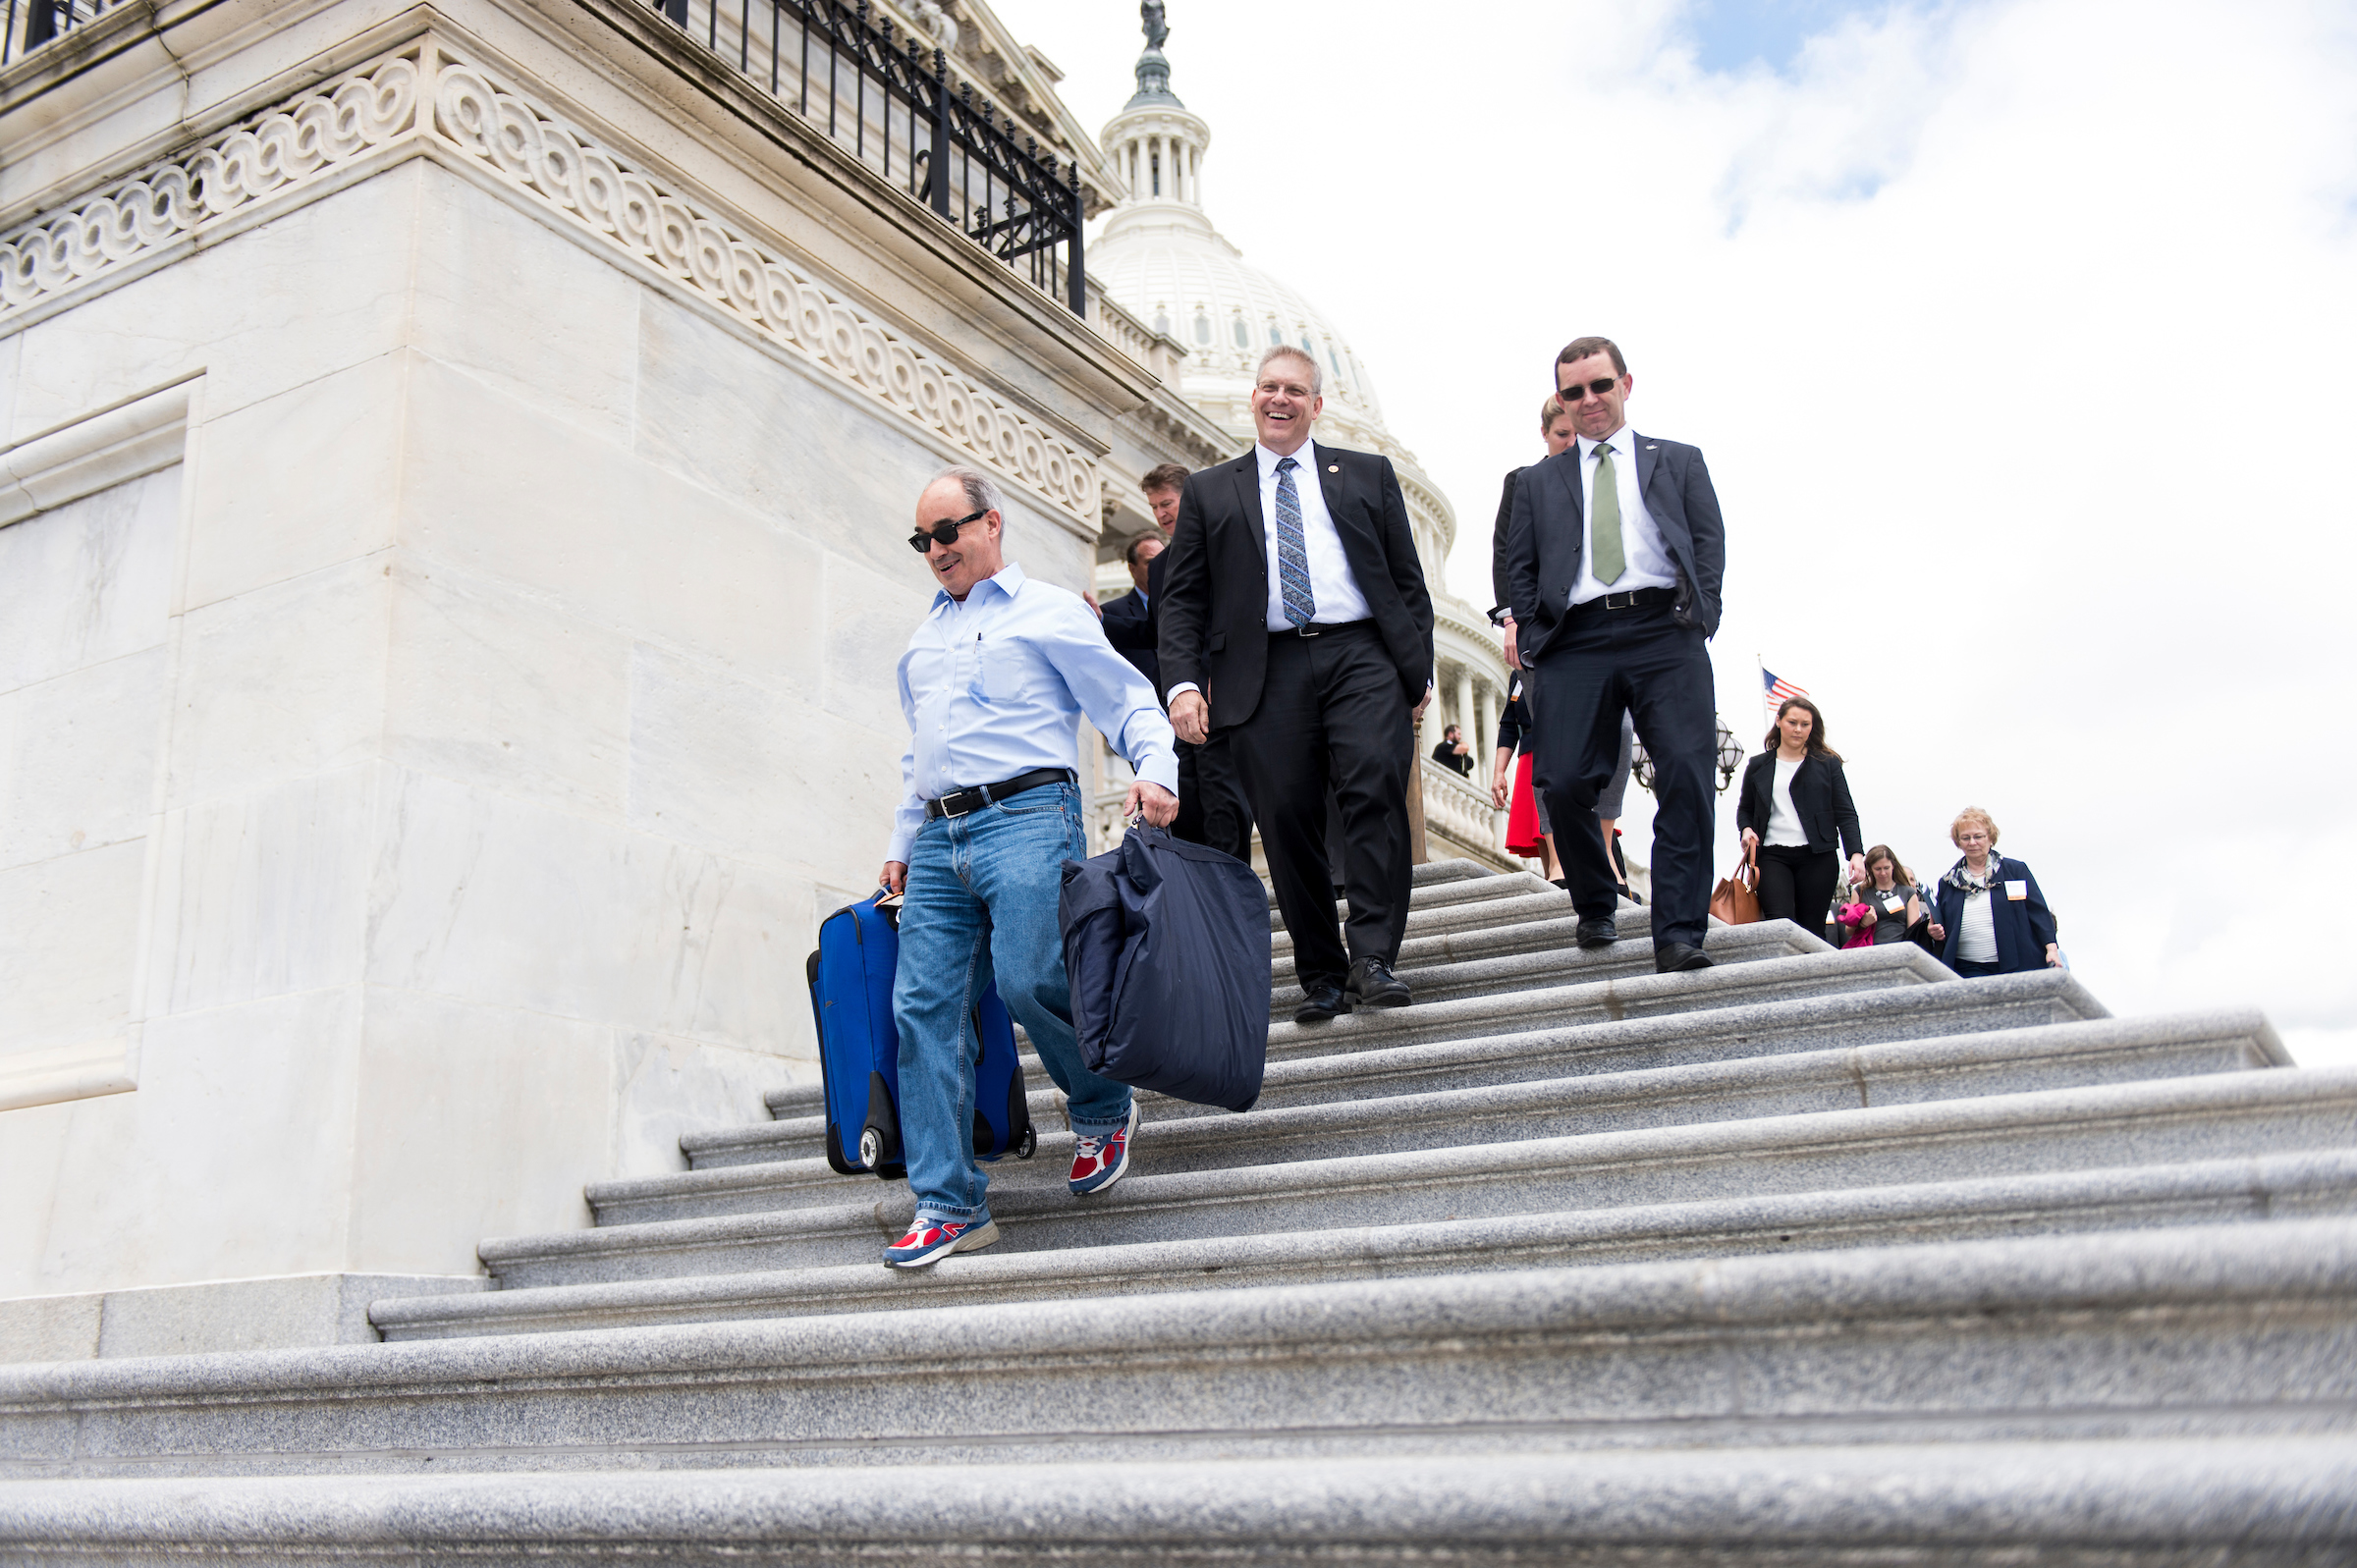 UNITED STATES - MAY 25: Rep. Bruce Poliquin, R-Maine, carries his luggage as he leaves the Capitol for the Memorial Day recess following the final votes of the week on Thursday, May 25, 2017. (Photo By Bill Clark/CQ Roll Call)